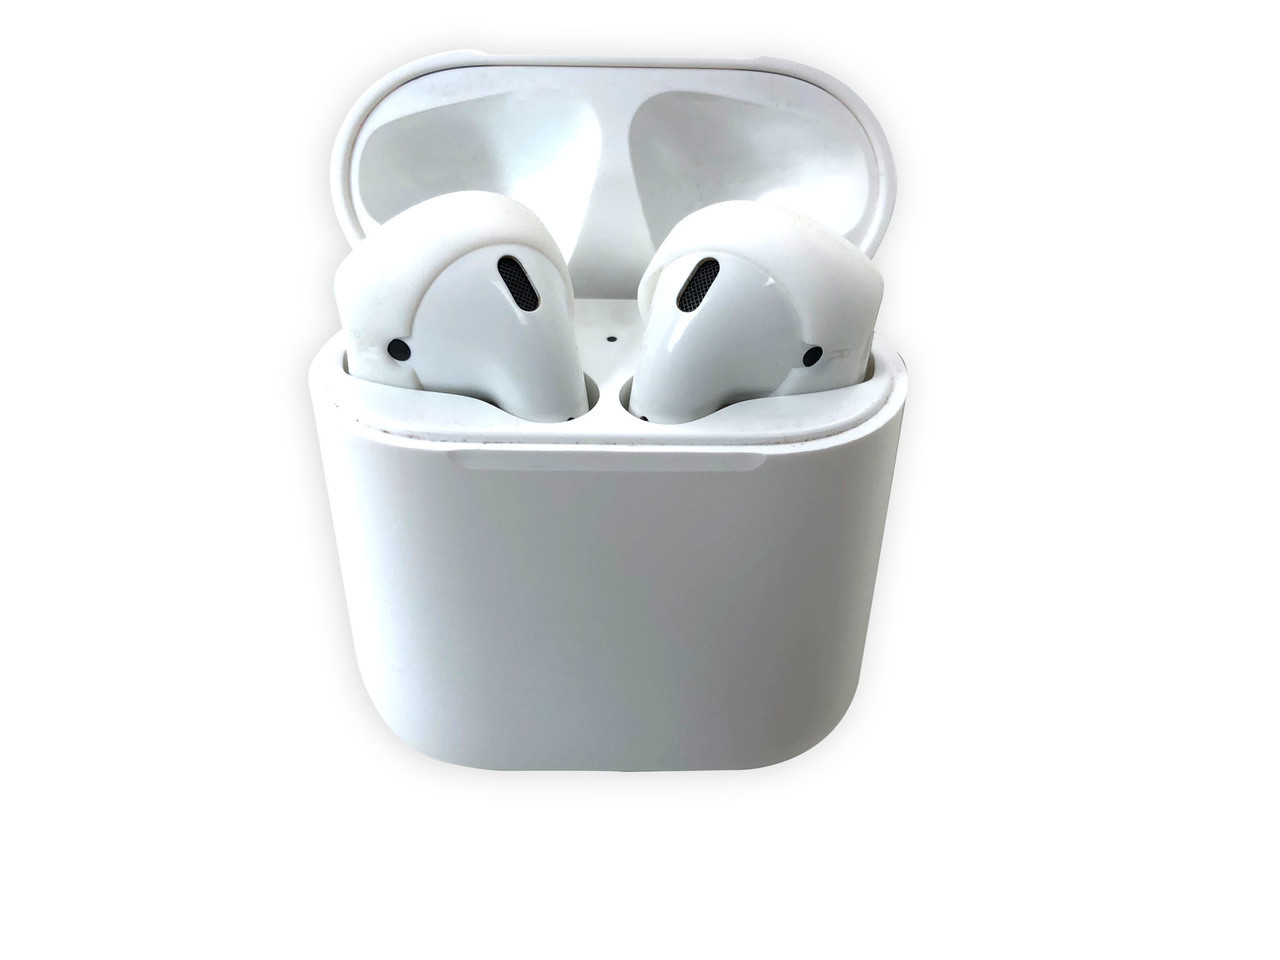 AERZ - AirPods & Apple Earbuds Skins | GHOST (Clear)  * AERZ is a simple comfortable AirPod and Apple Earbud 2.0 solution that improves the sound quality and comfort of your Apple AirPods and Apple Earbud 2.0     * Soft high quality silicone cover skins improve the comfort of Apple AirPods and Apple Earbuds 2.0 allowing you to wear your AirPods or Earbuds for hours on end without discomfort     * AERZ dramatically improves the audio quality of Apple AirPods and Apple Earbuds 2.0 by air sealing AirPods and Earbuds to prevent the escape of sound waves; thereby dramatically improving audio quality * Ultra-thin but Durable: AERZ Don't make your AirPods or earbuds too big for your ear canals.  It's the soft silicone surface that seals the audio quality in and makes your AirPods and Earbuds ultra comfortable